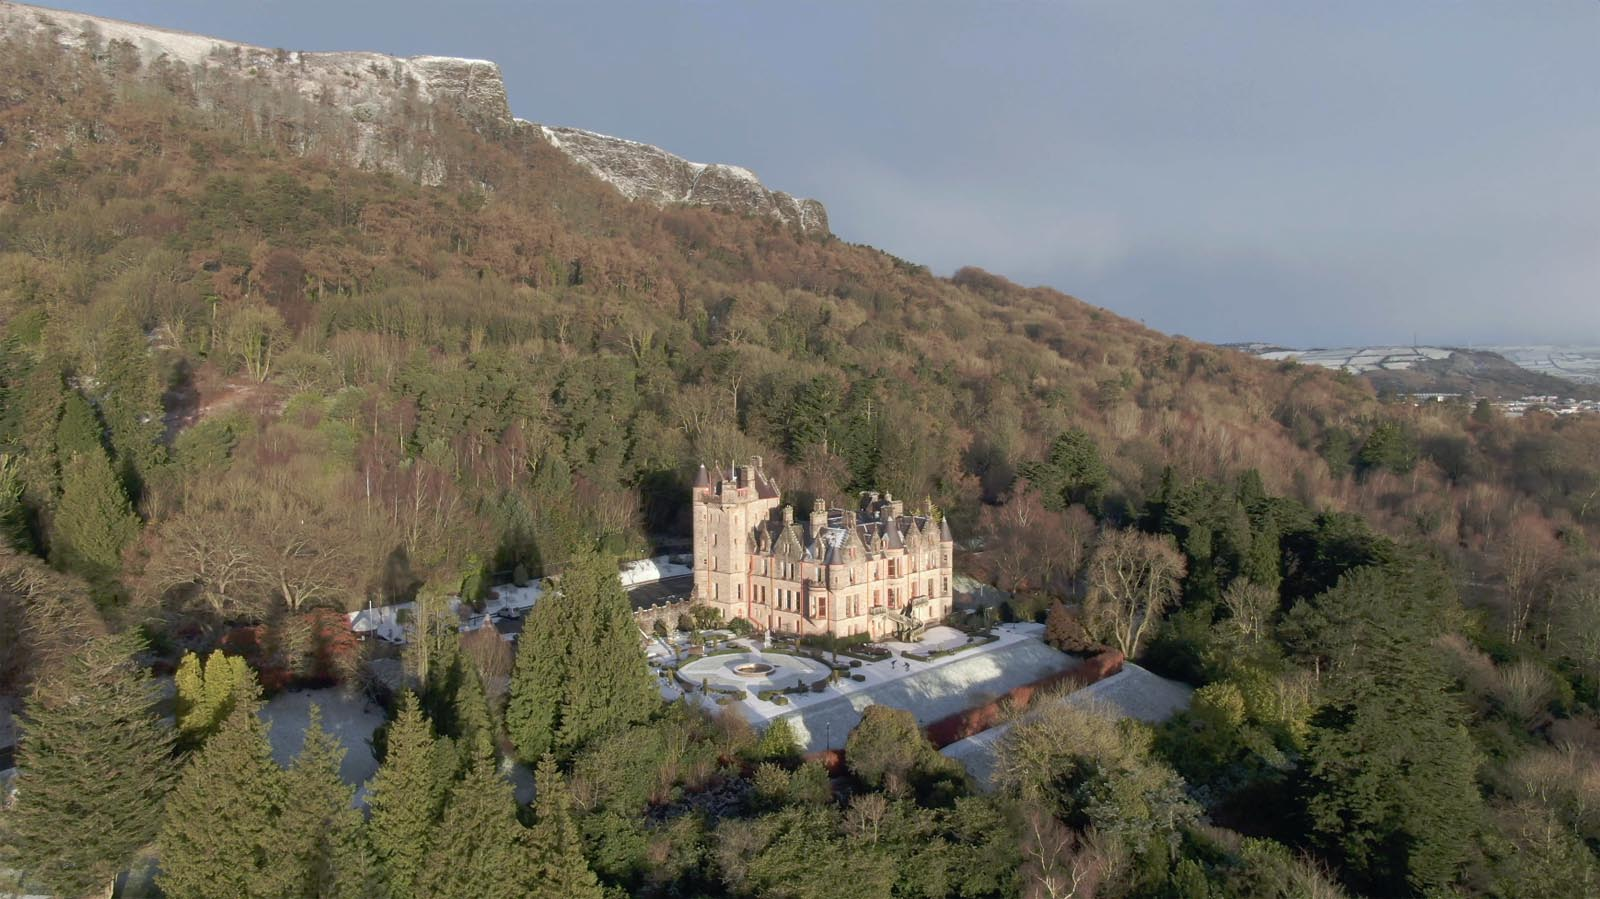 Aerial drone photography and video production services Dublin and Ireland portfolio - changing seasons in one video of Belfast Castle, Northern Ireland, video screenshot 6